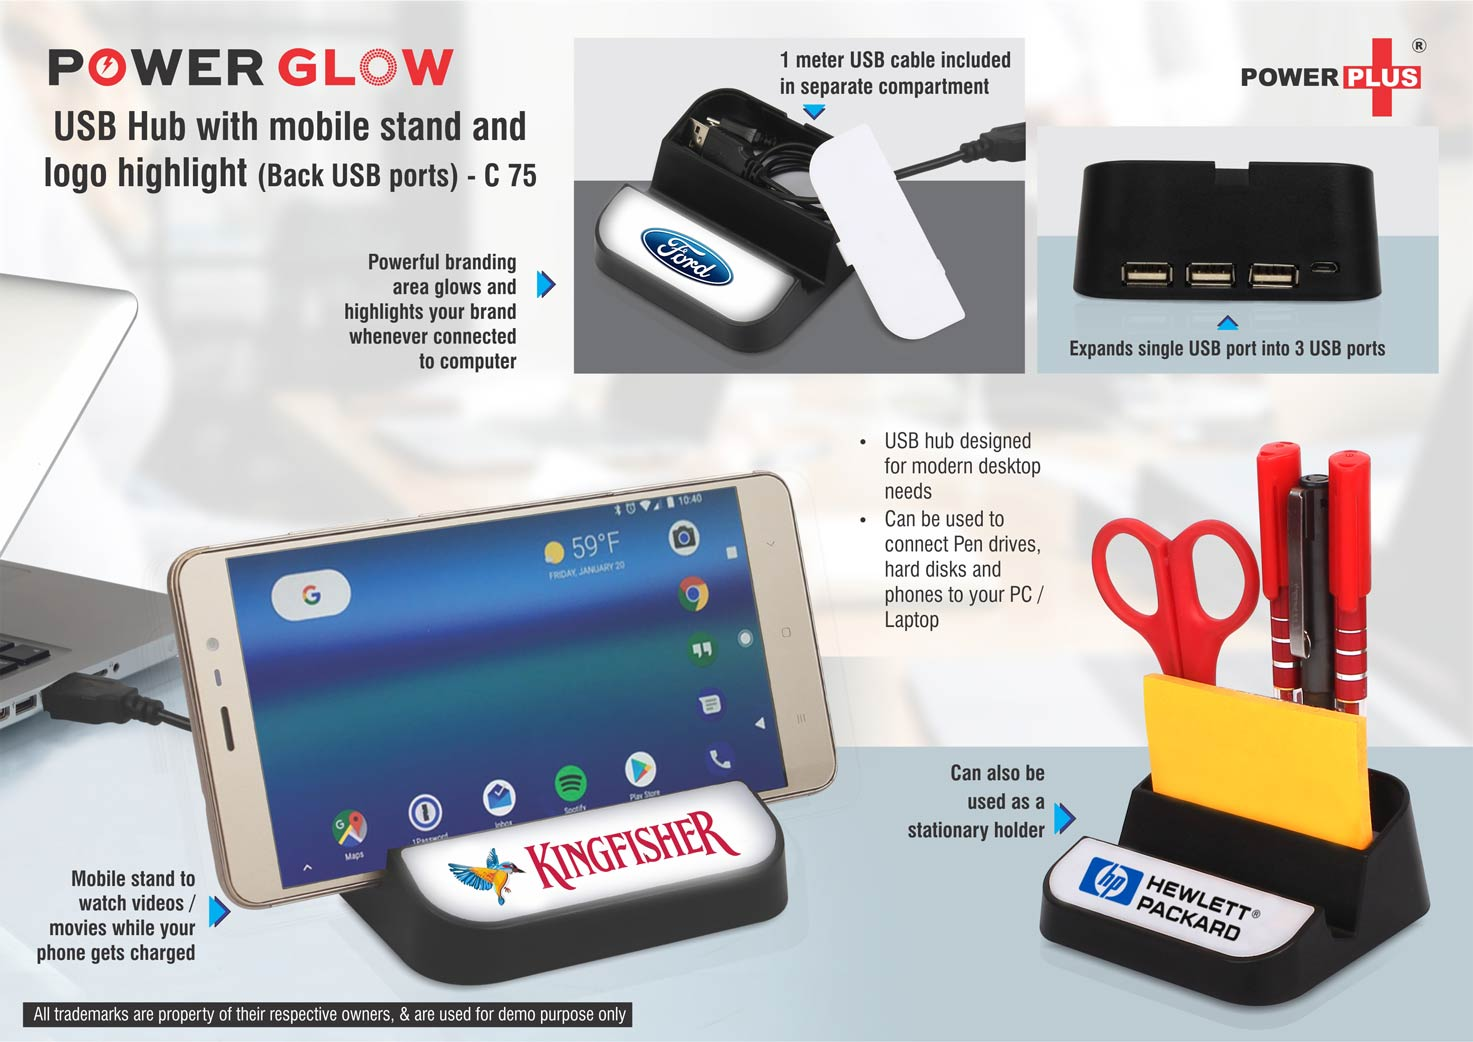 C95 - Powerglow Handy USB hub with logo highlight | 4 USB ports | Silicon strap | Built-in cable